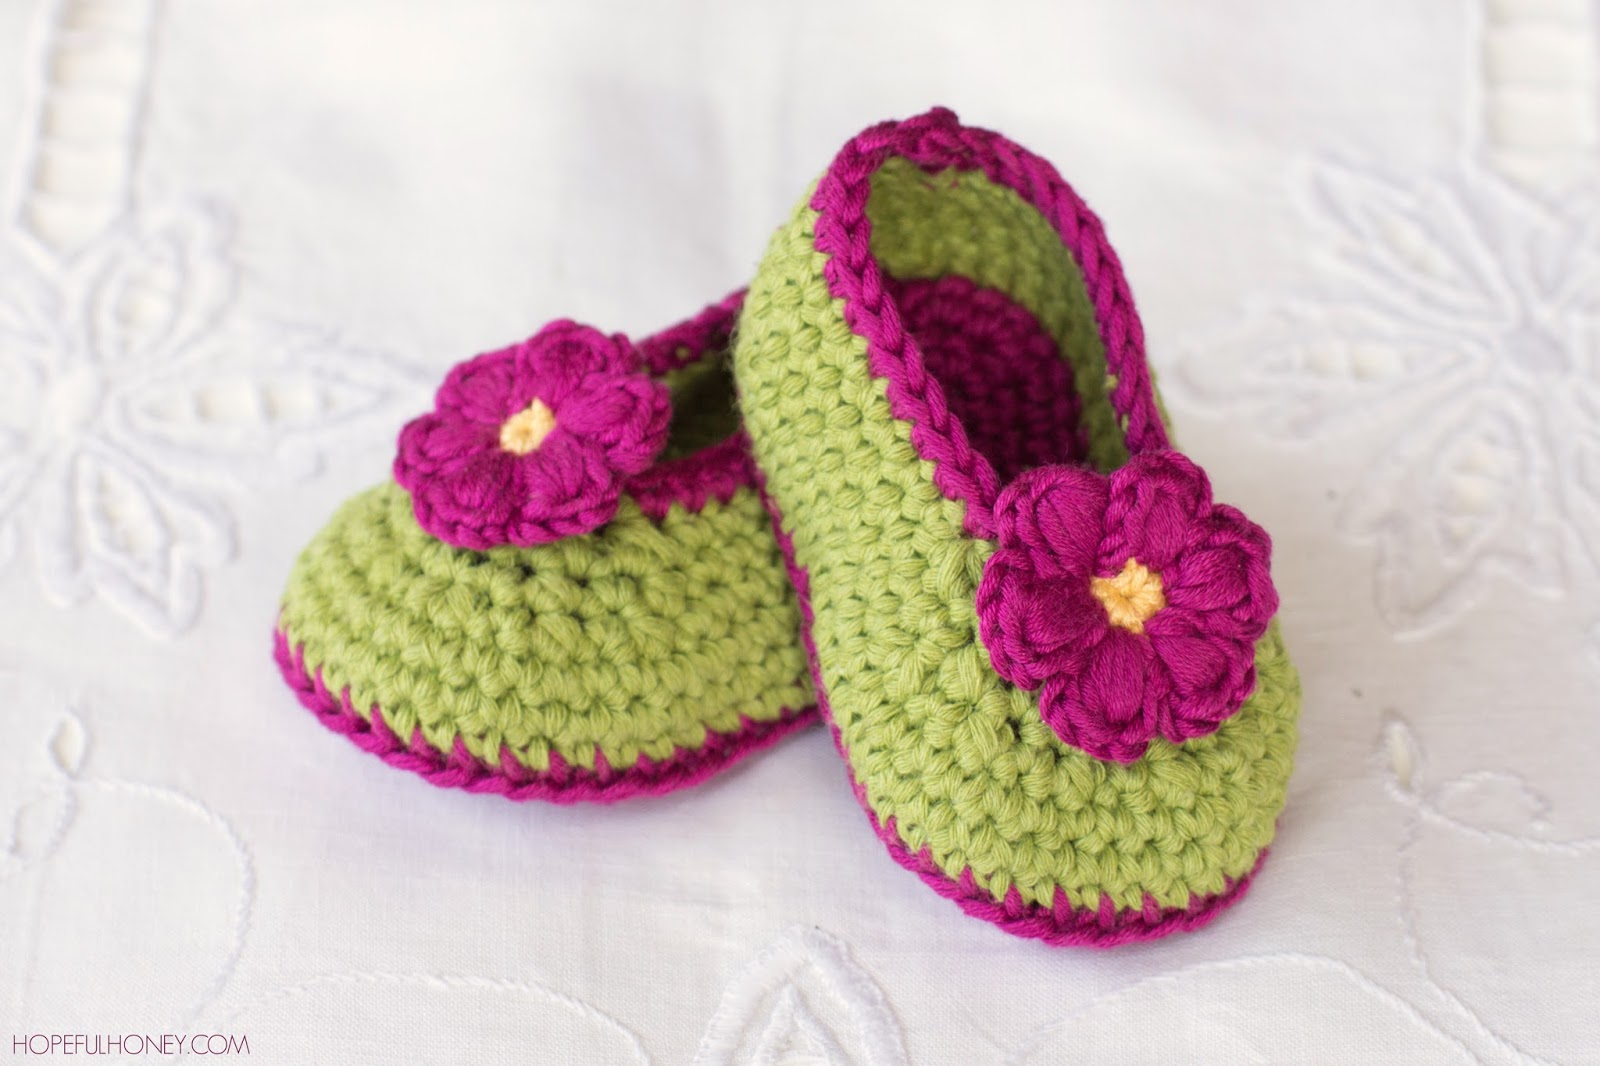 Free Crochet Pattern Of Baby Booties : Hopeful Honey Craft, Crochet, Create: Fairy Blossom Baby ...